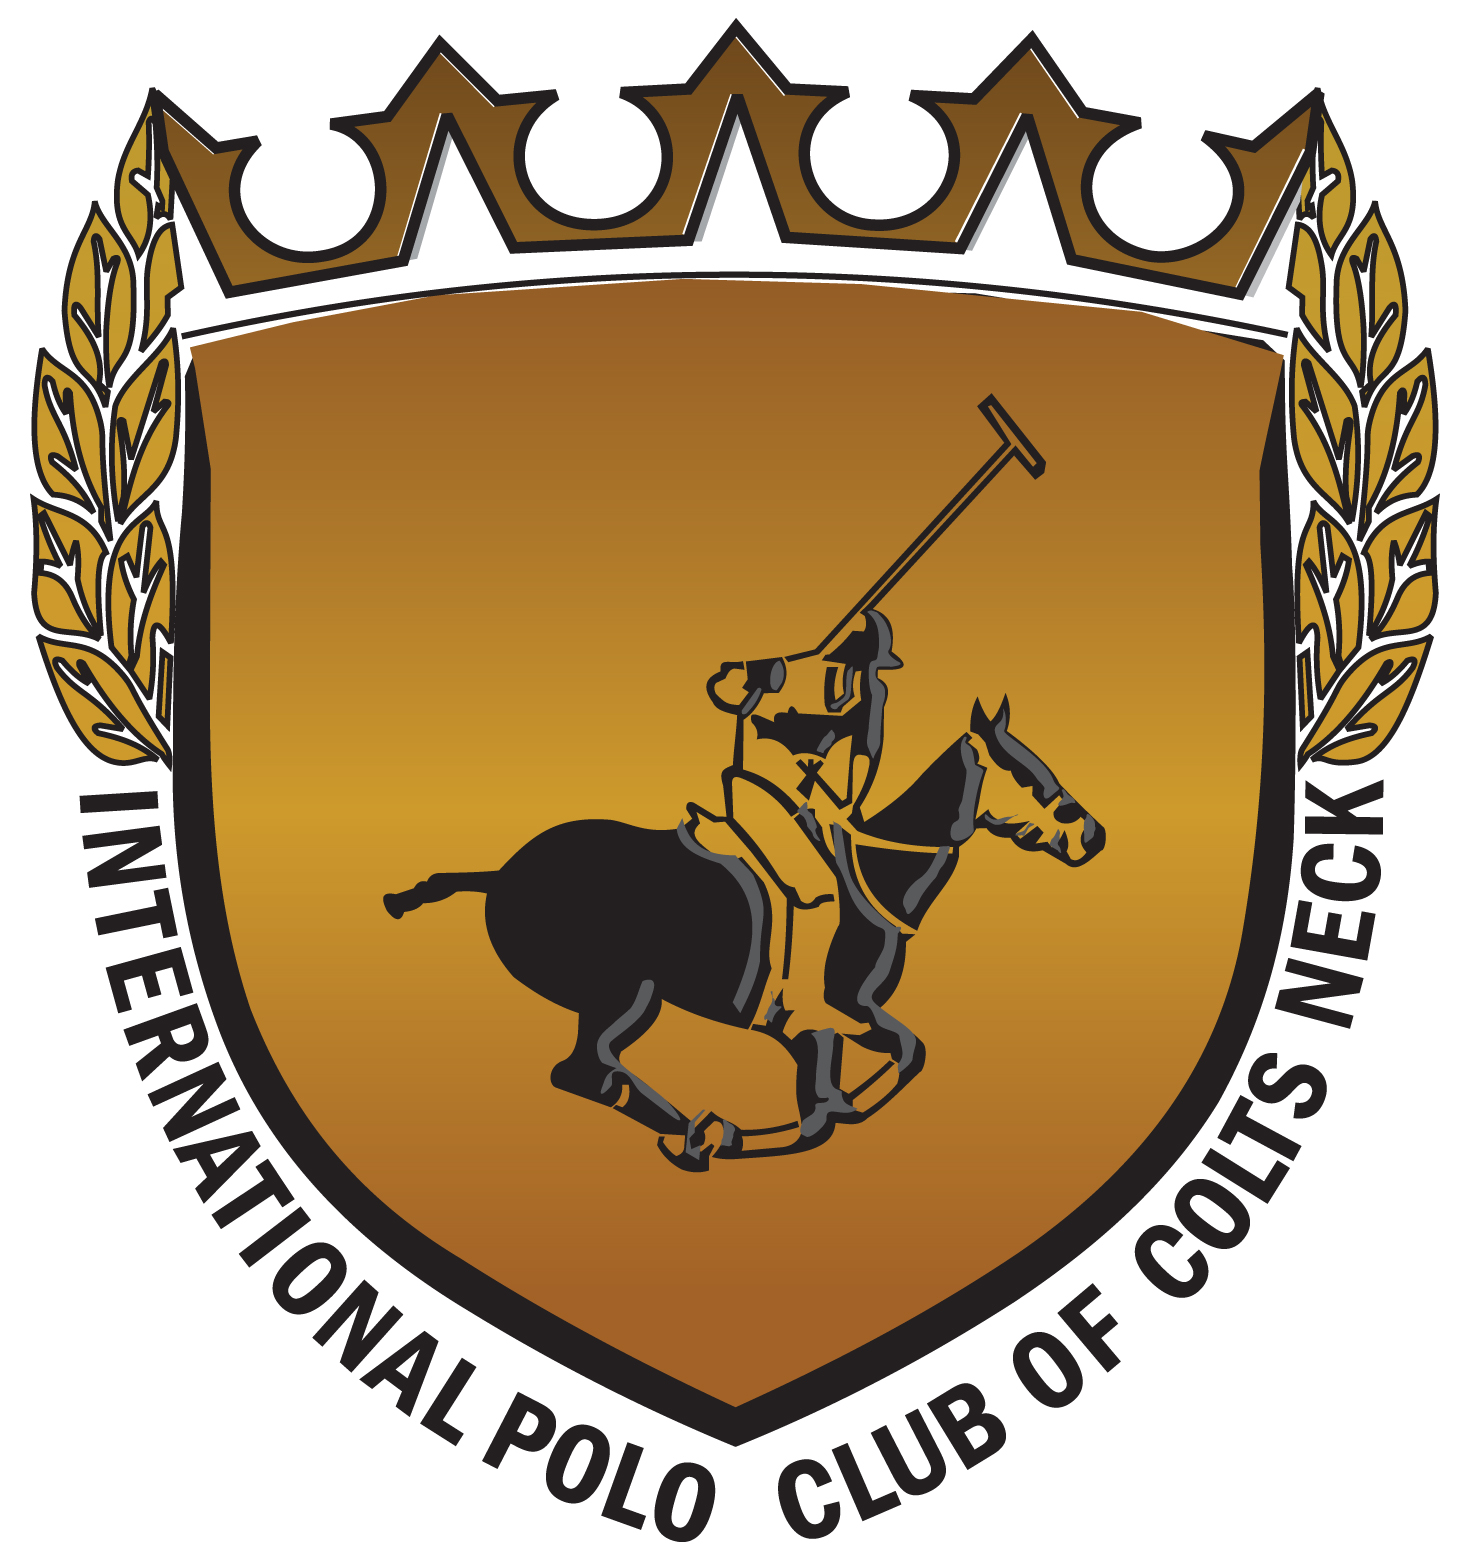 NACHO FIGUERAS RETURNS TO INTERNATIONAL POLO CLUB OF COLTS NECK.